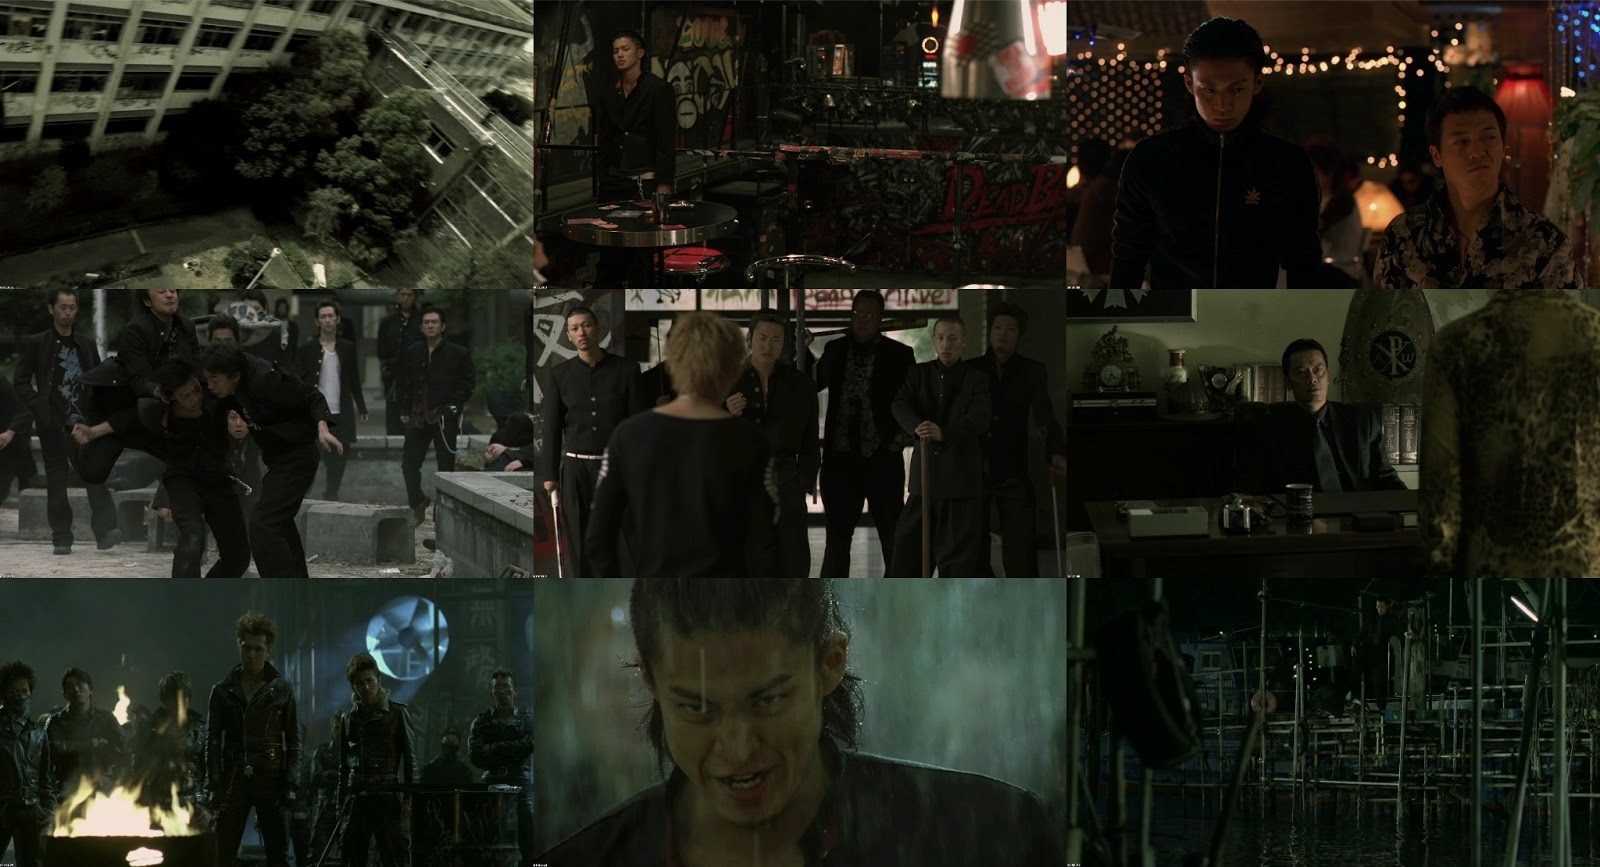 Crows+Zero+(2007)+BluRay+1080p+5.1CH+x264+1,9GB+Hnmovies